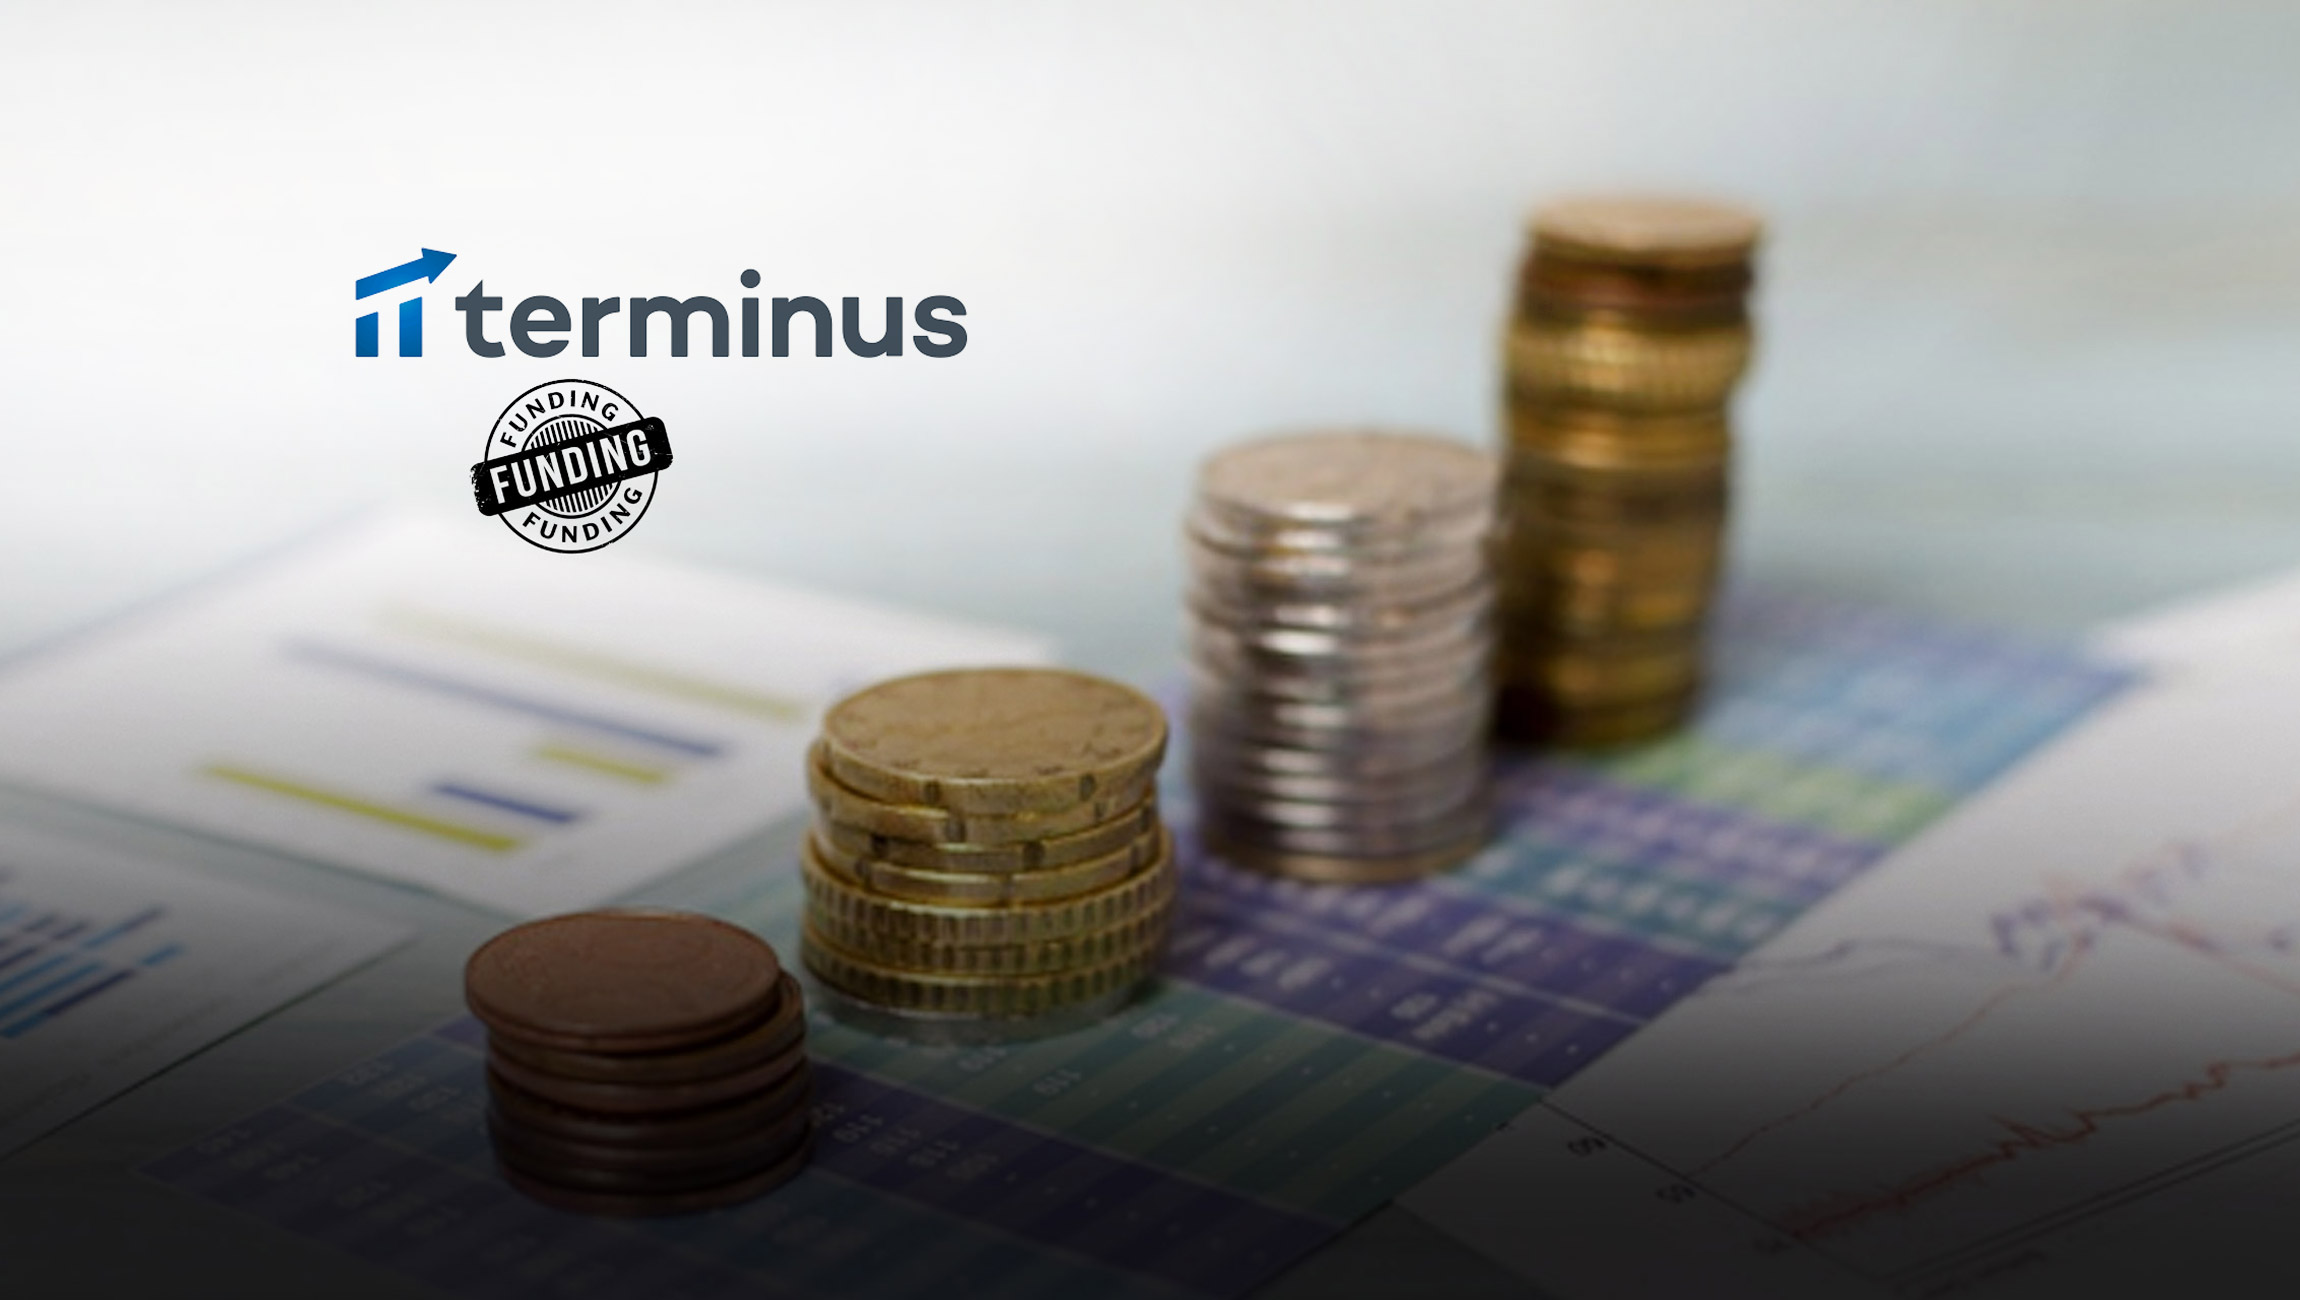 Terminus Secures $90M Series C Led By Great Hill Partners